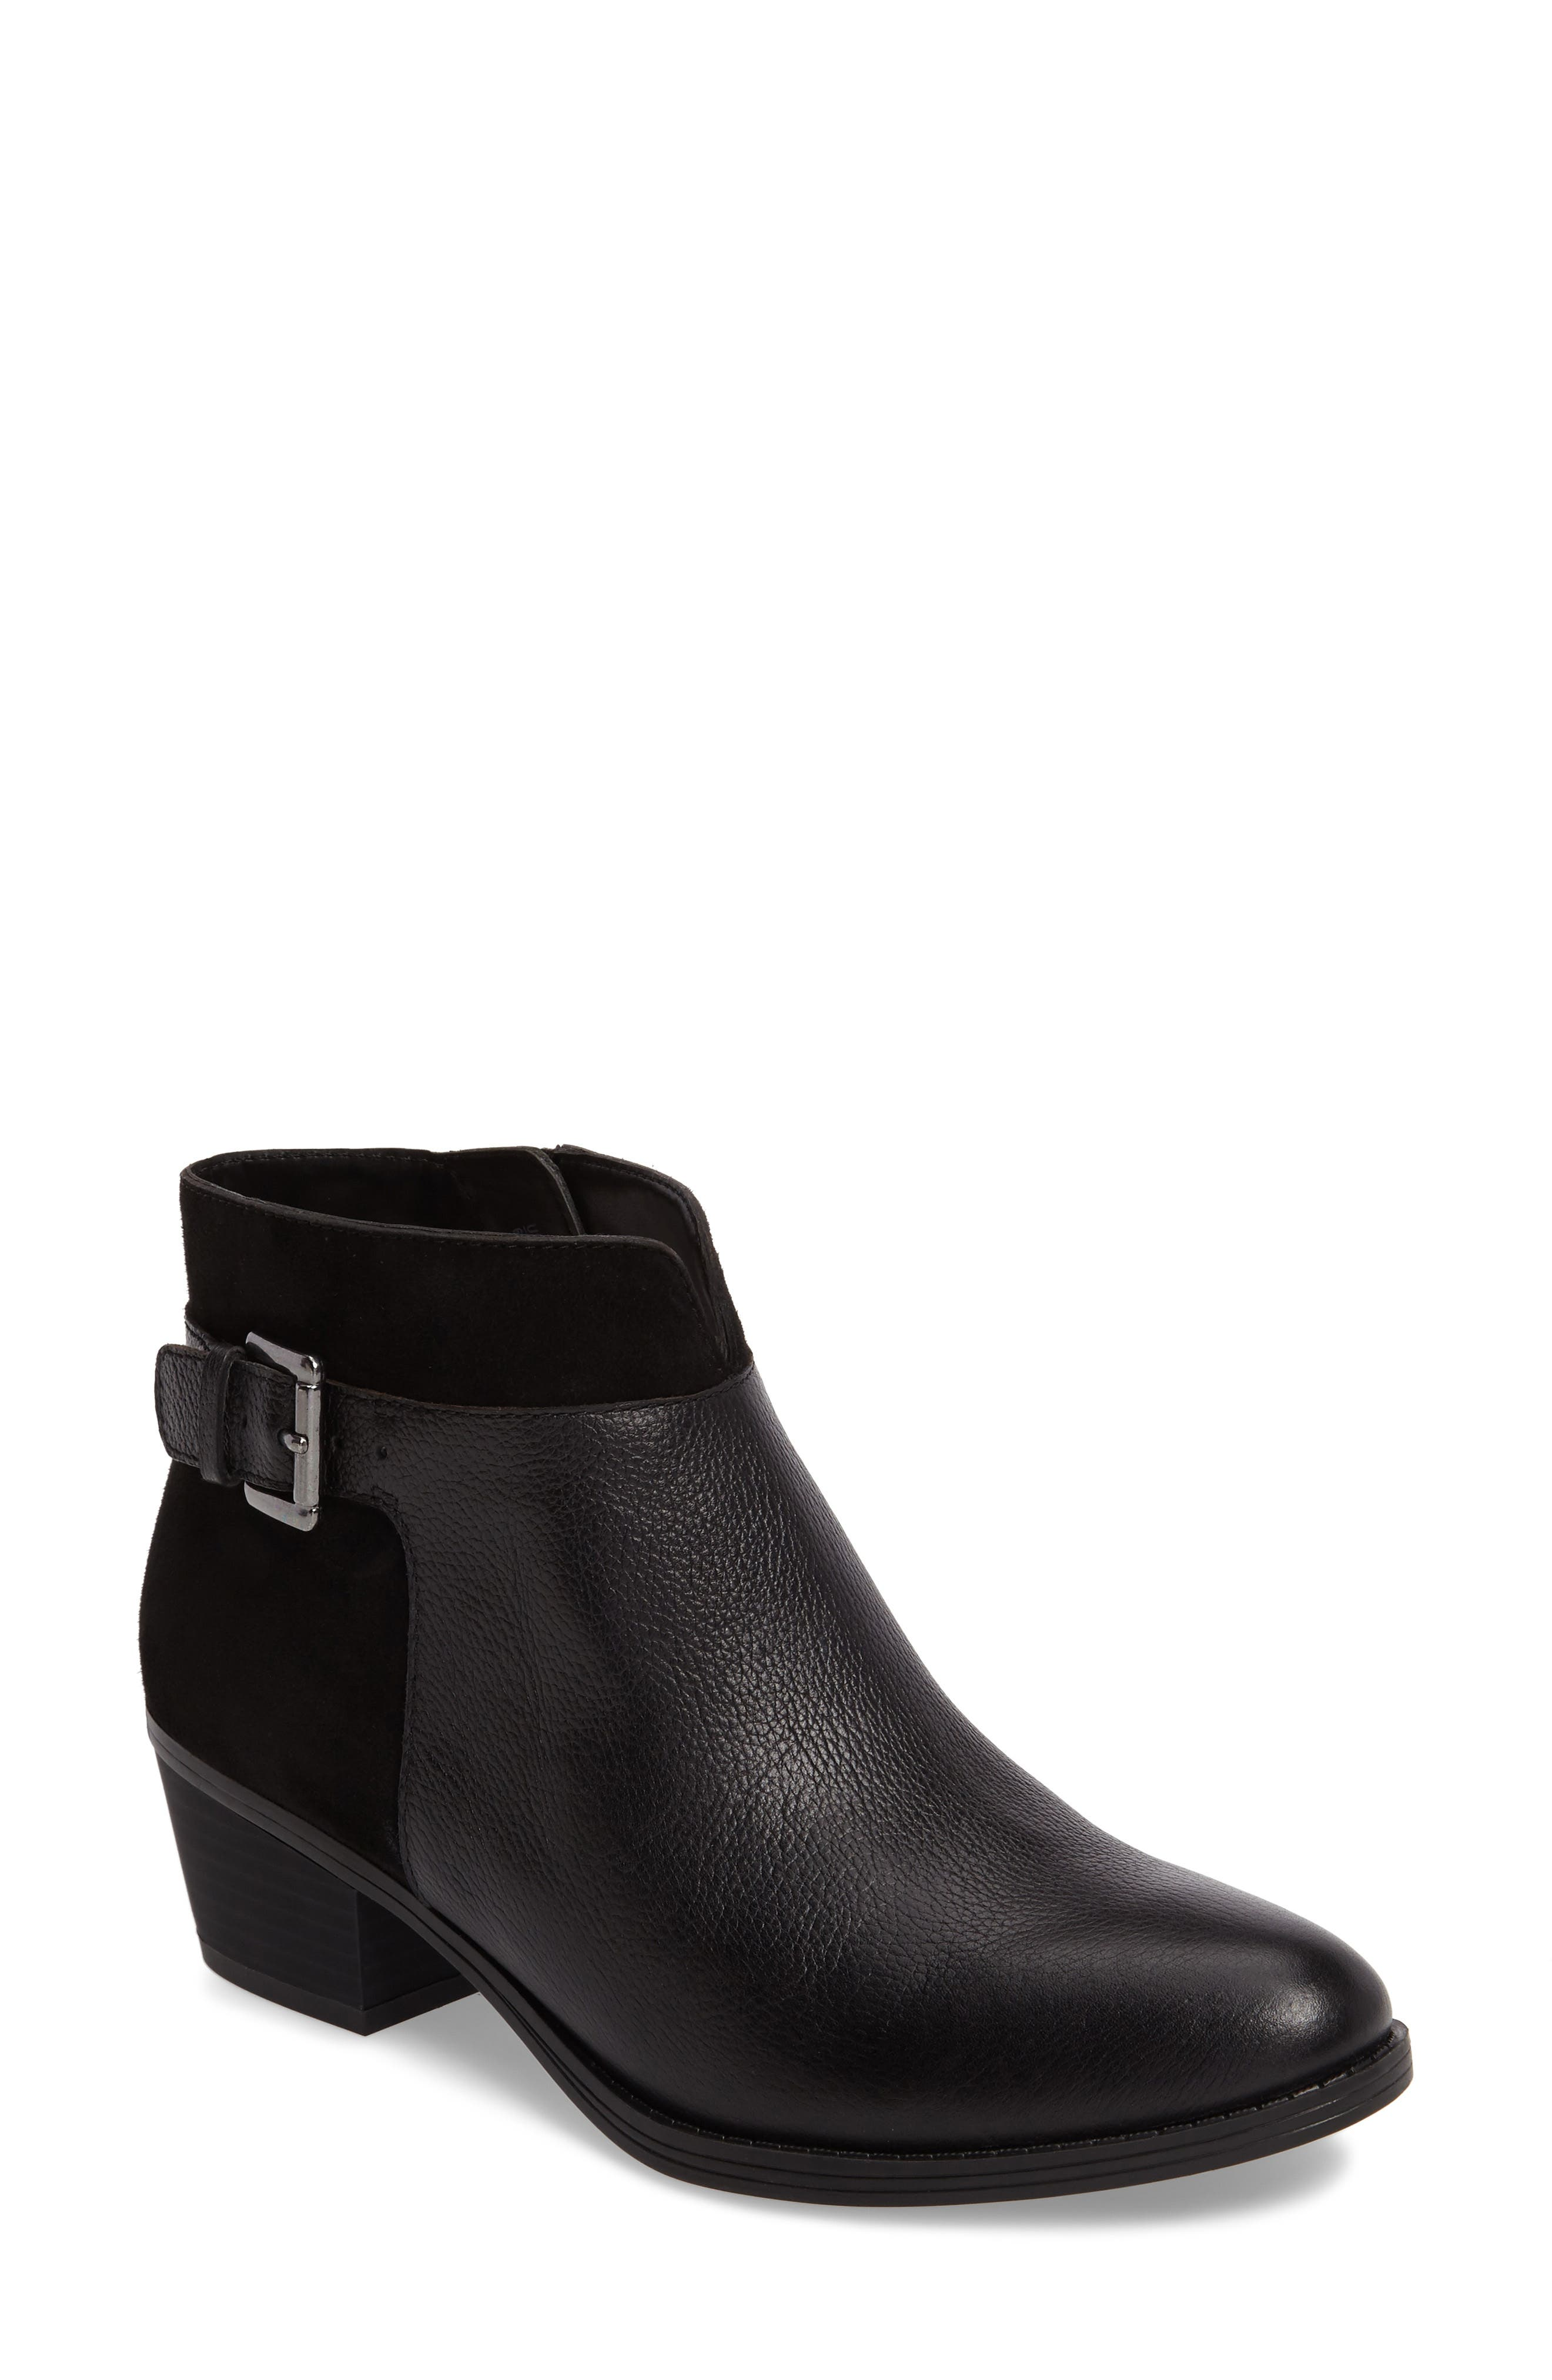 Wanya Buckle Bootie,                         Main,                         color, Black Leather